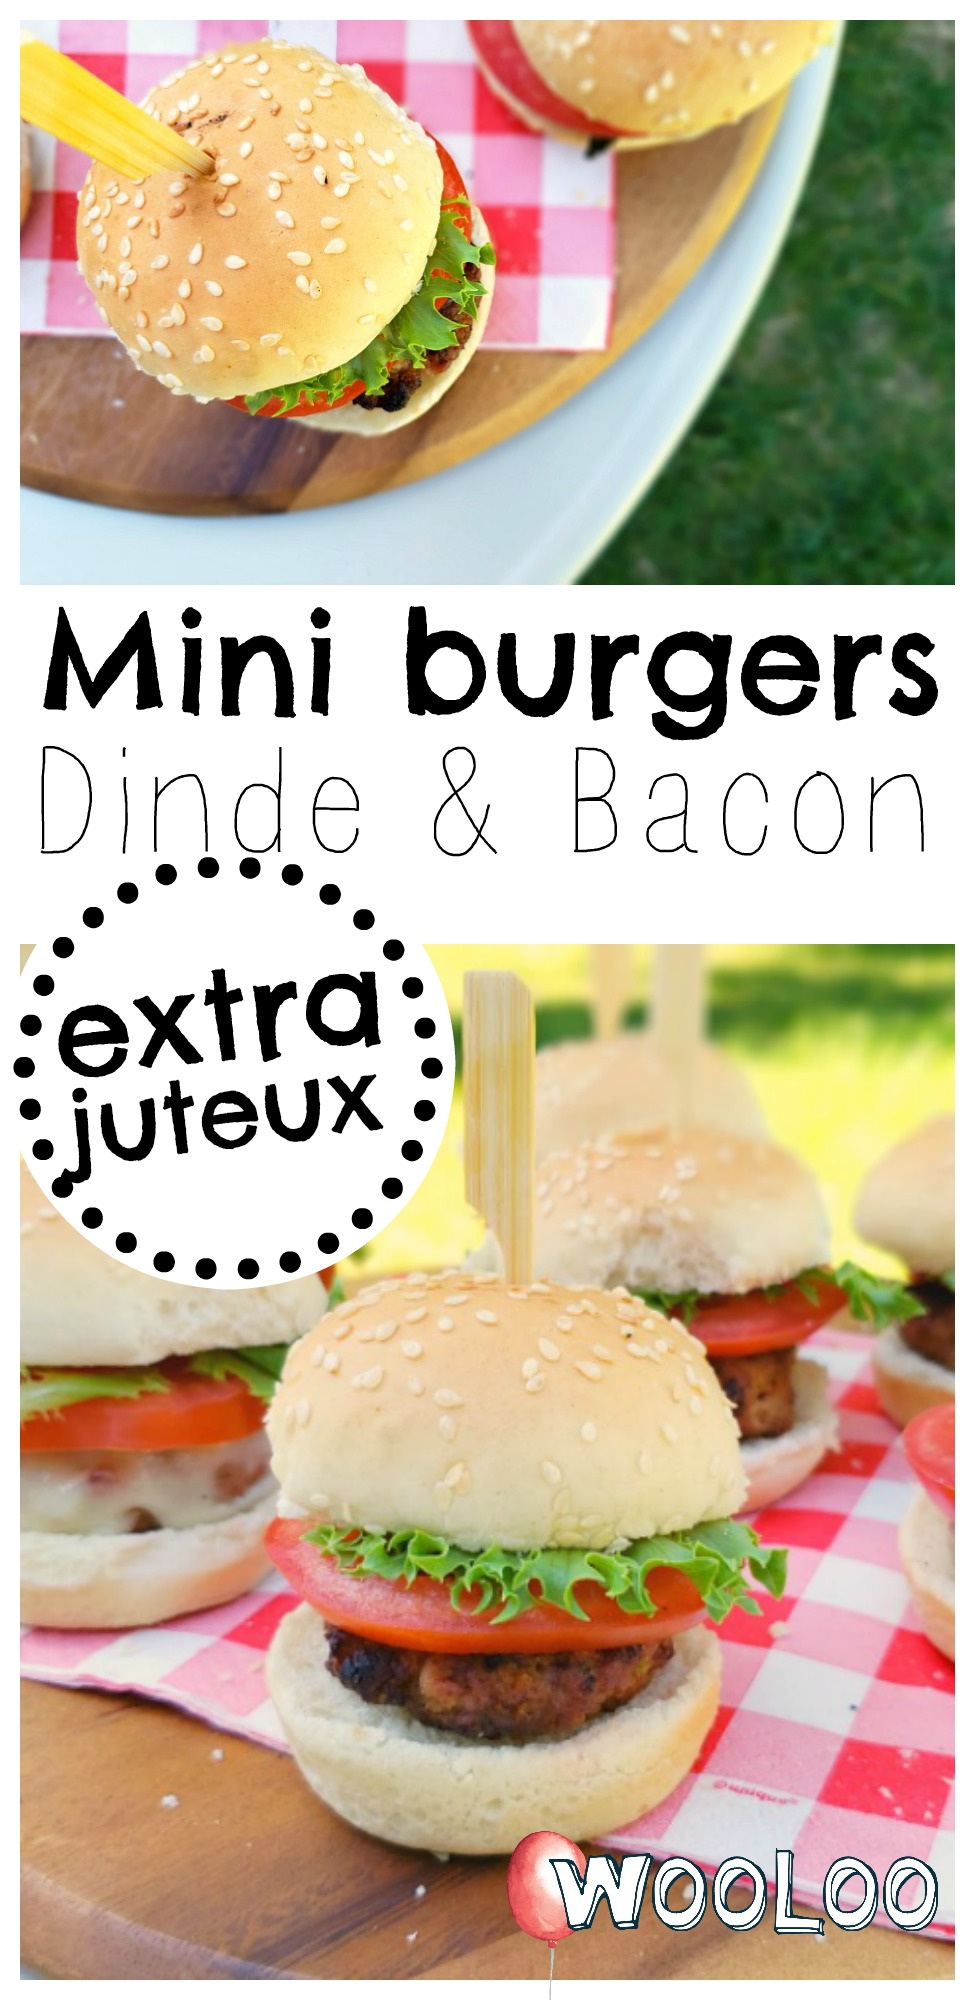 Mini burgers de dindon au bacon extra juteux wooloo